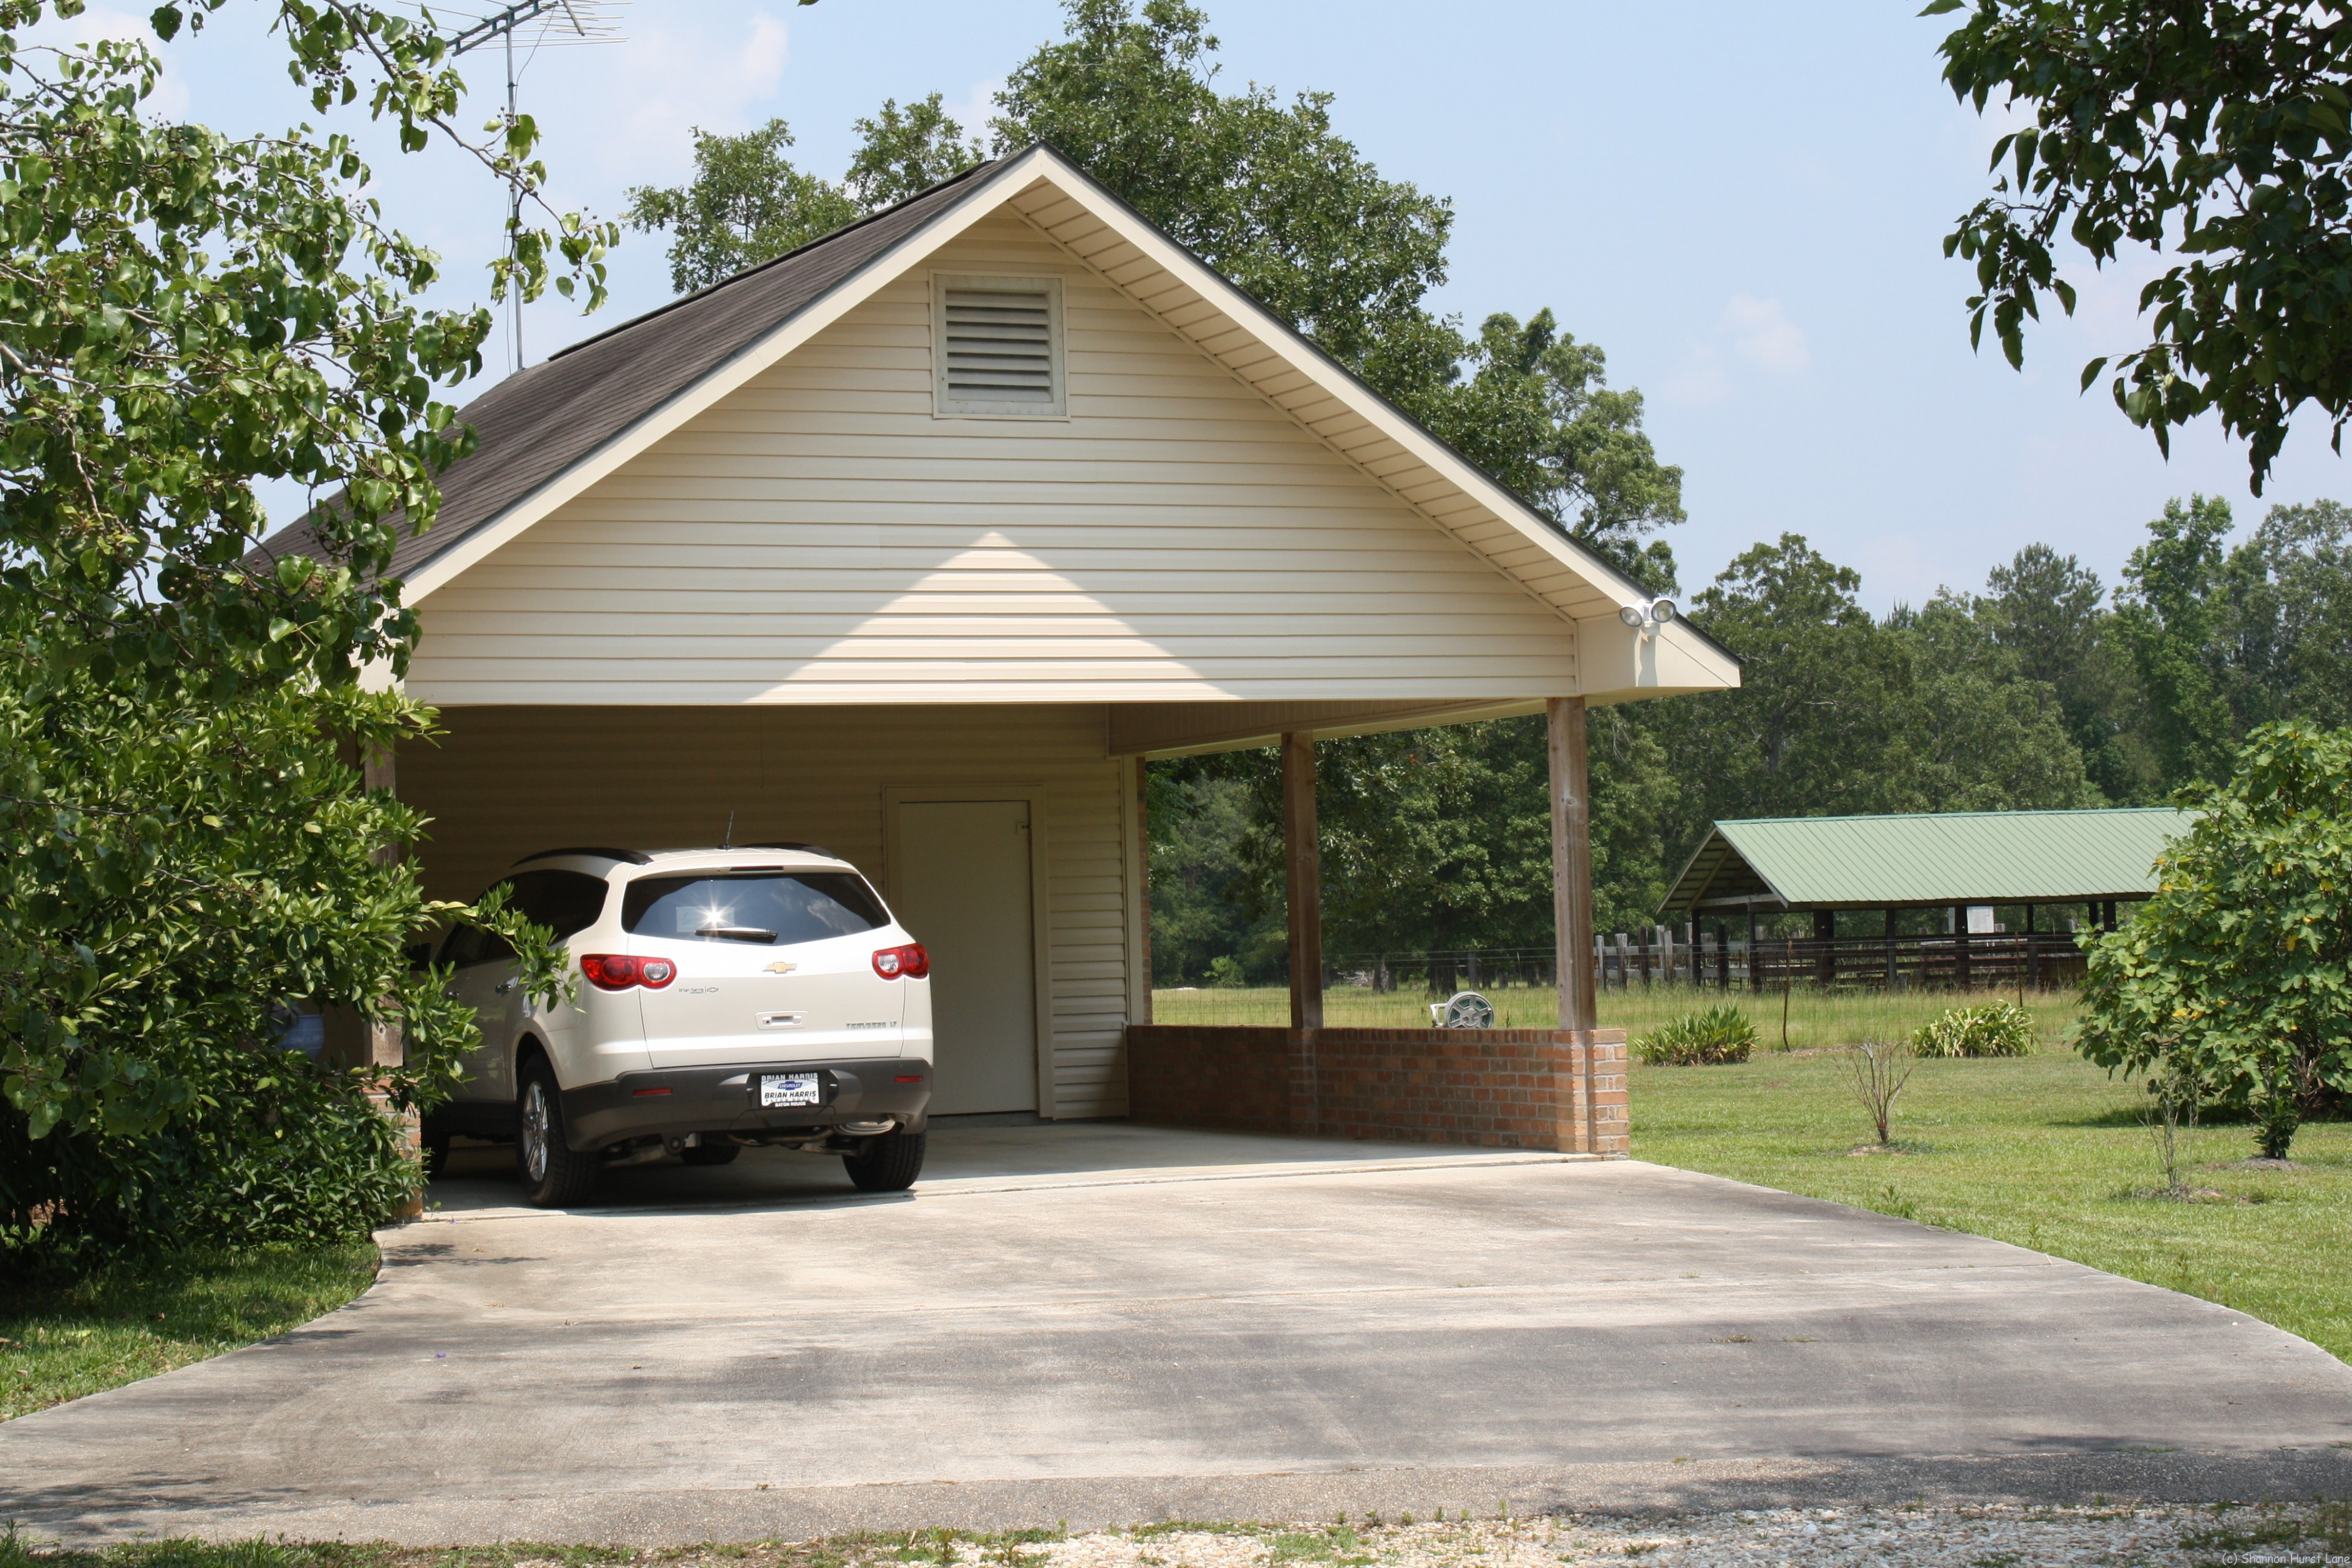 Decoration Ideas : Double Carport With Attic Storage And ..